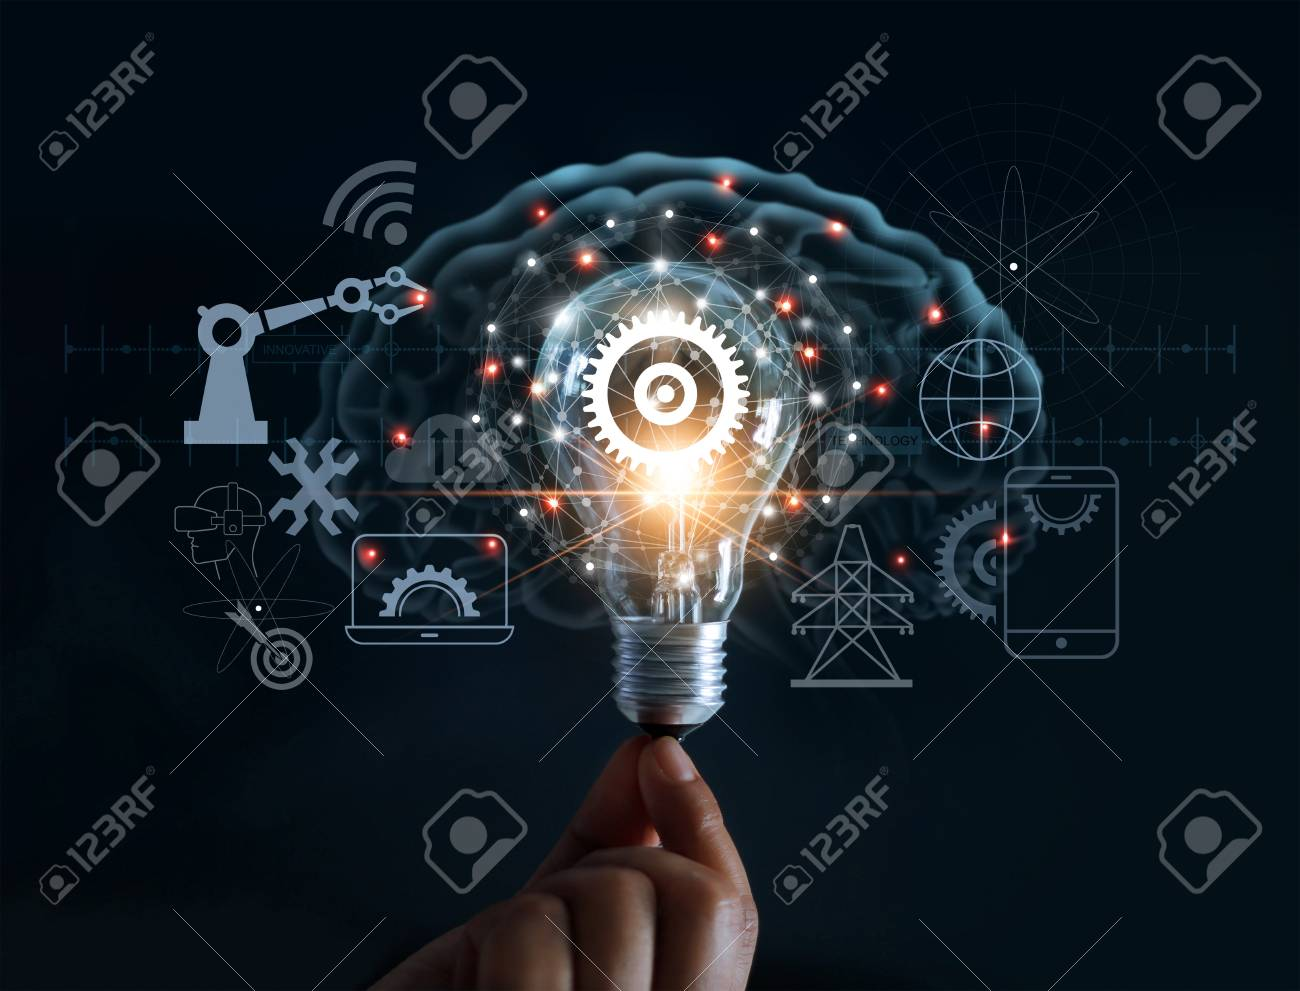 Hand holding light bulb and cog inside and innovation icon network connection on brain background, innovative technology in science and industrial concept - 102231232